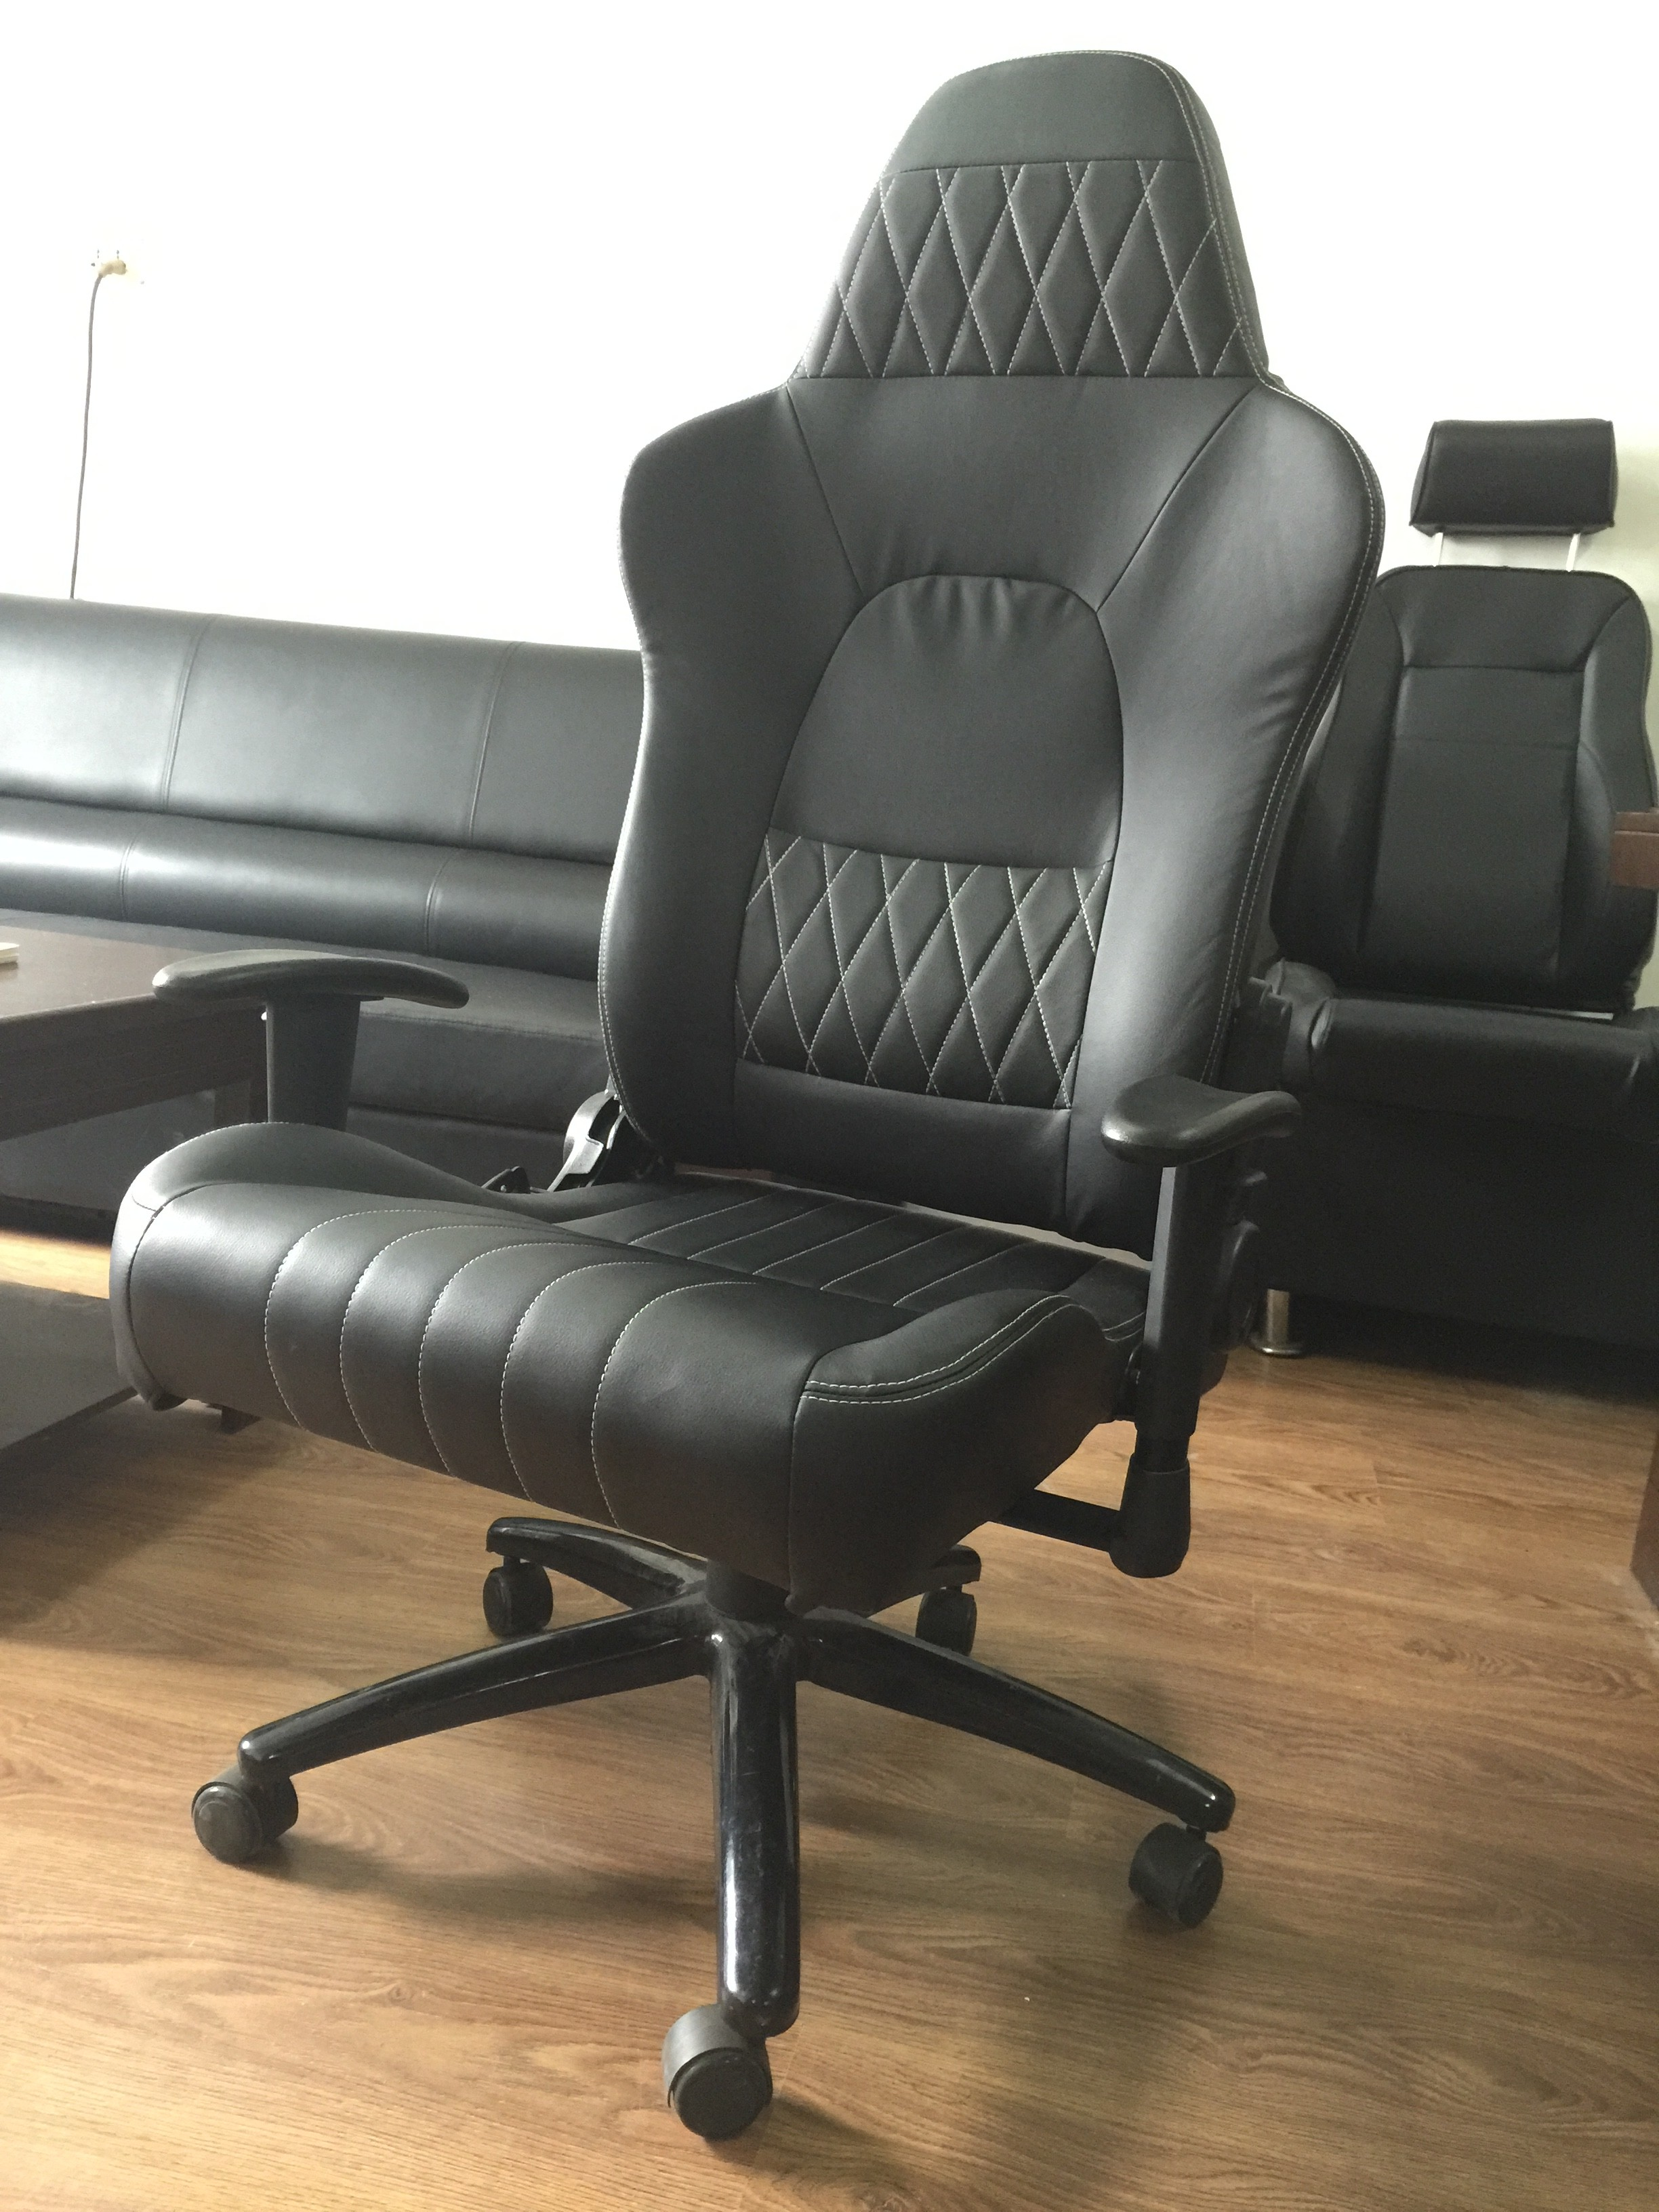 Modern Black Ergonomic Swivel Office Chair With Wheels / Adjustable Desk Chair